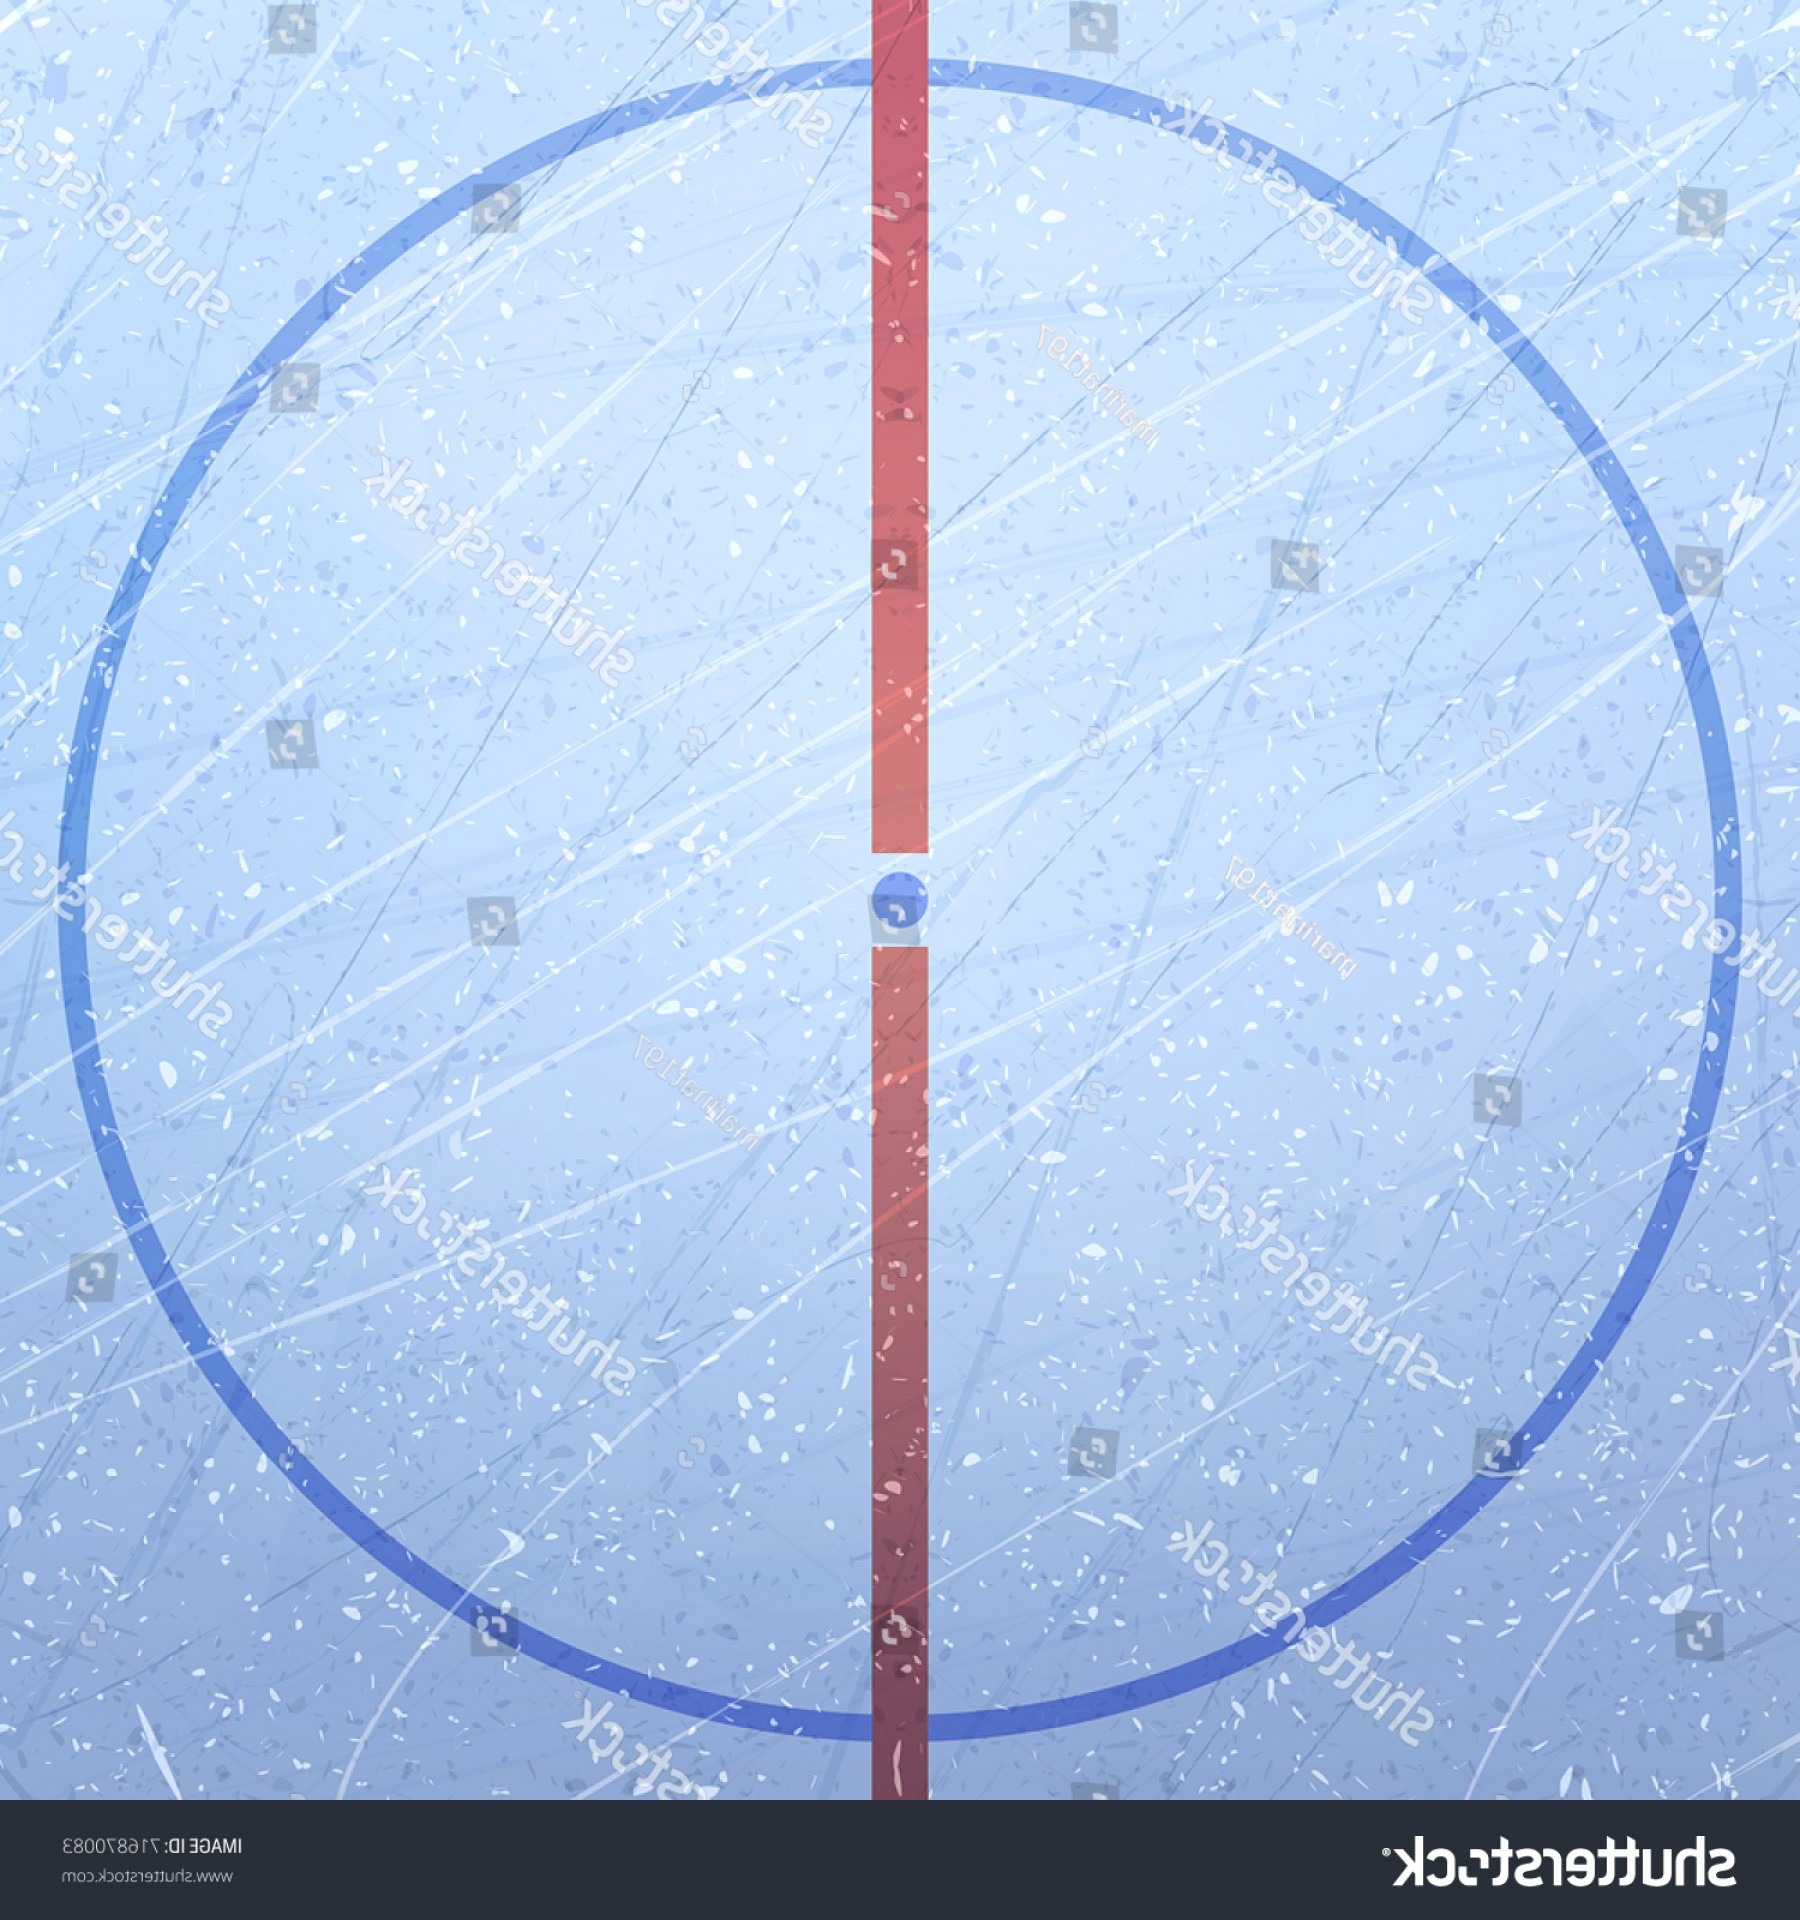 1800x1920 Vector Ice Hockey Rink Textures Blue Arenawp